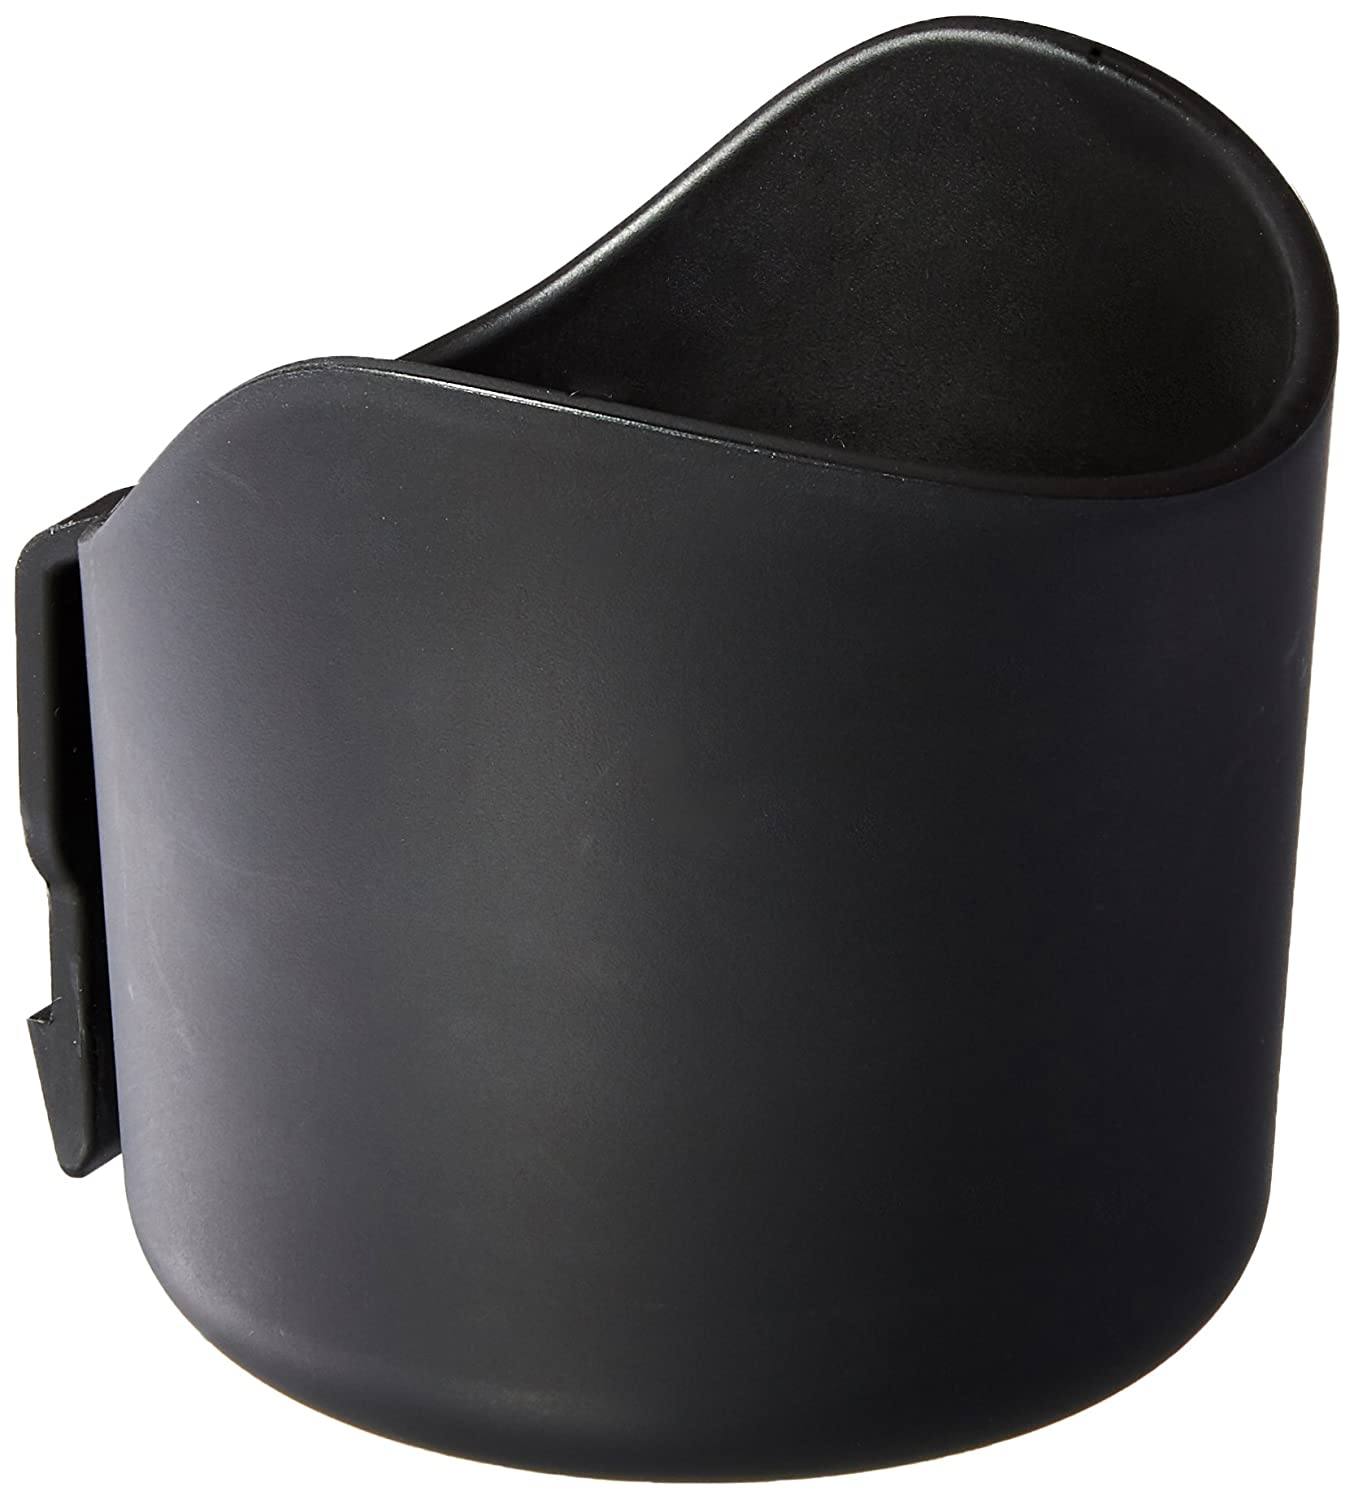 Clek Foonf/Fllo Drink Thingy Cup Holder, Black,Pack of 1